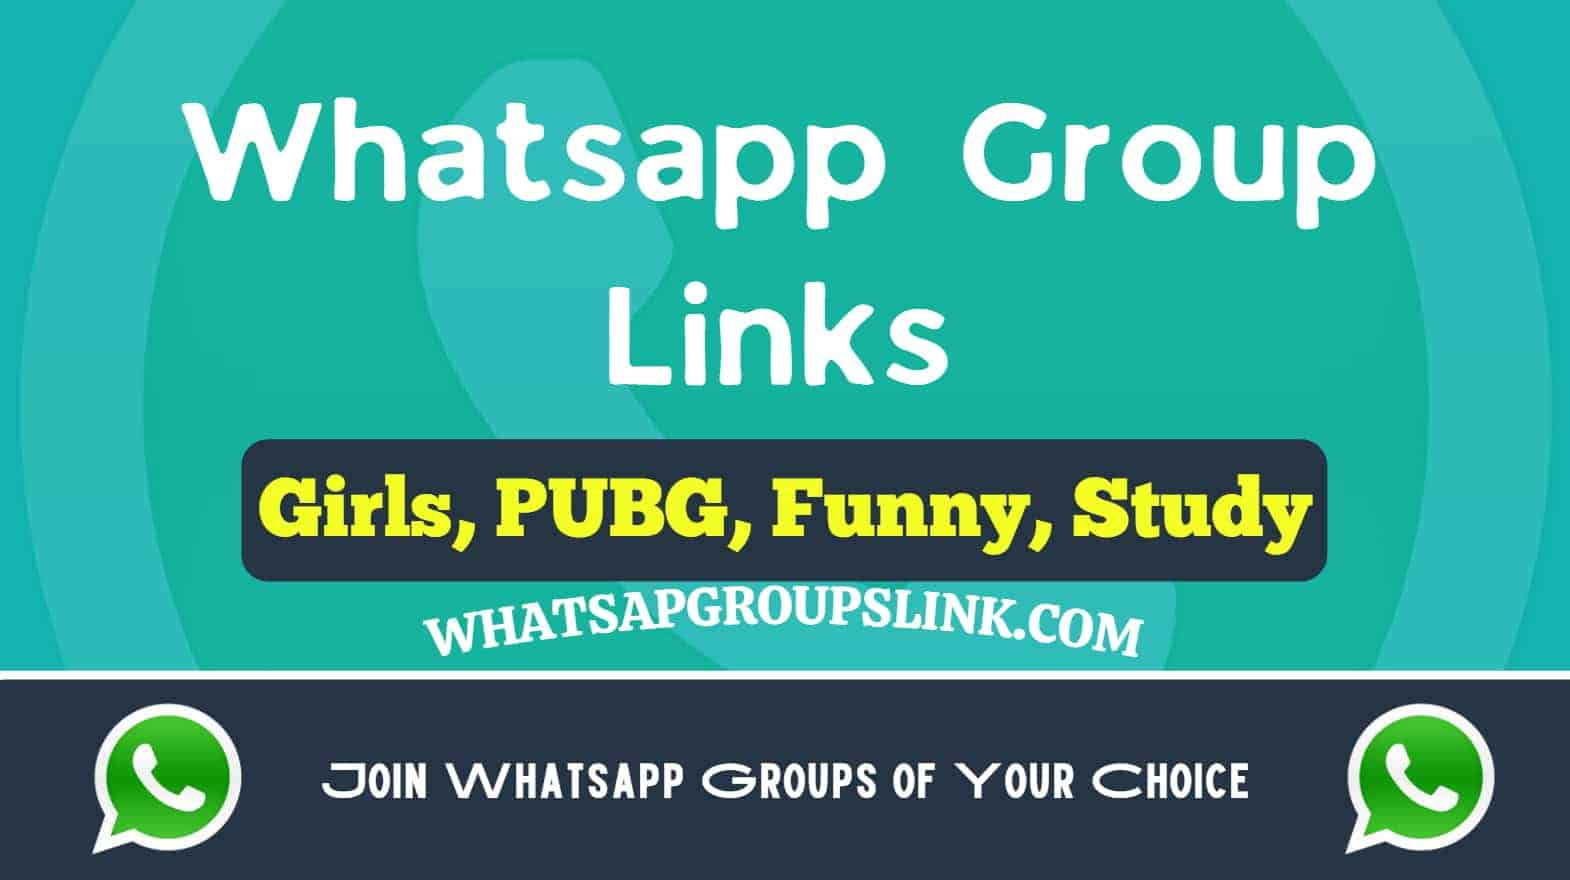 Whatsapp group link tag and two whatsapp icon on bottom